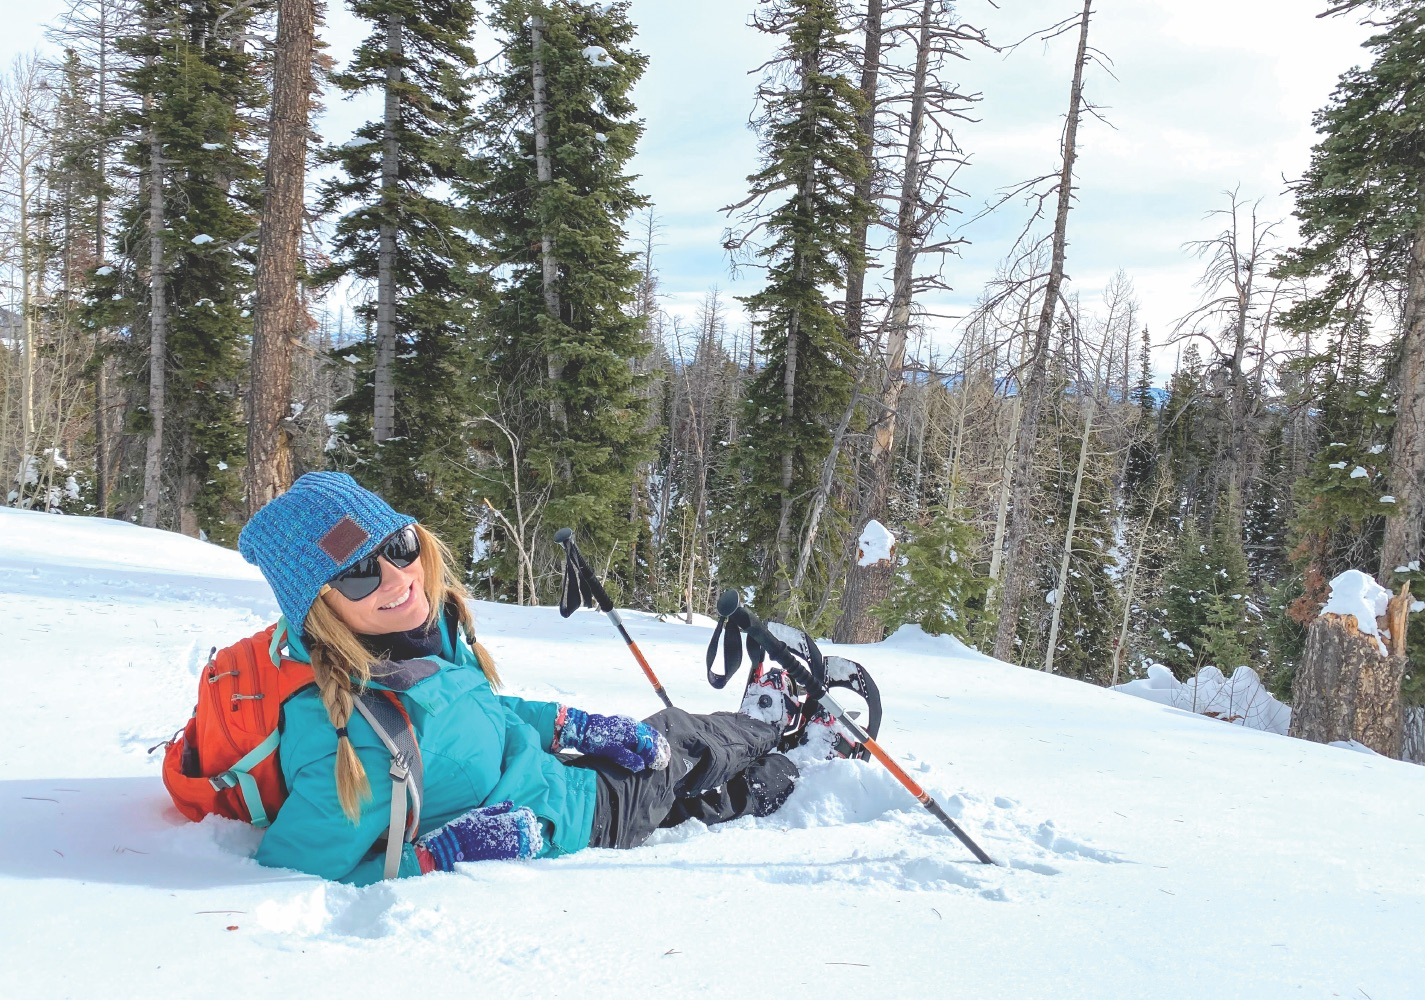 Stefany snowshoeing to stay fit